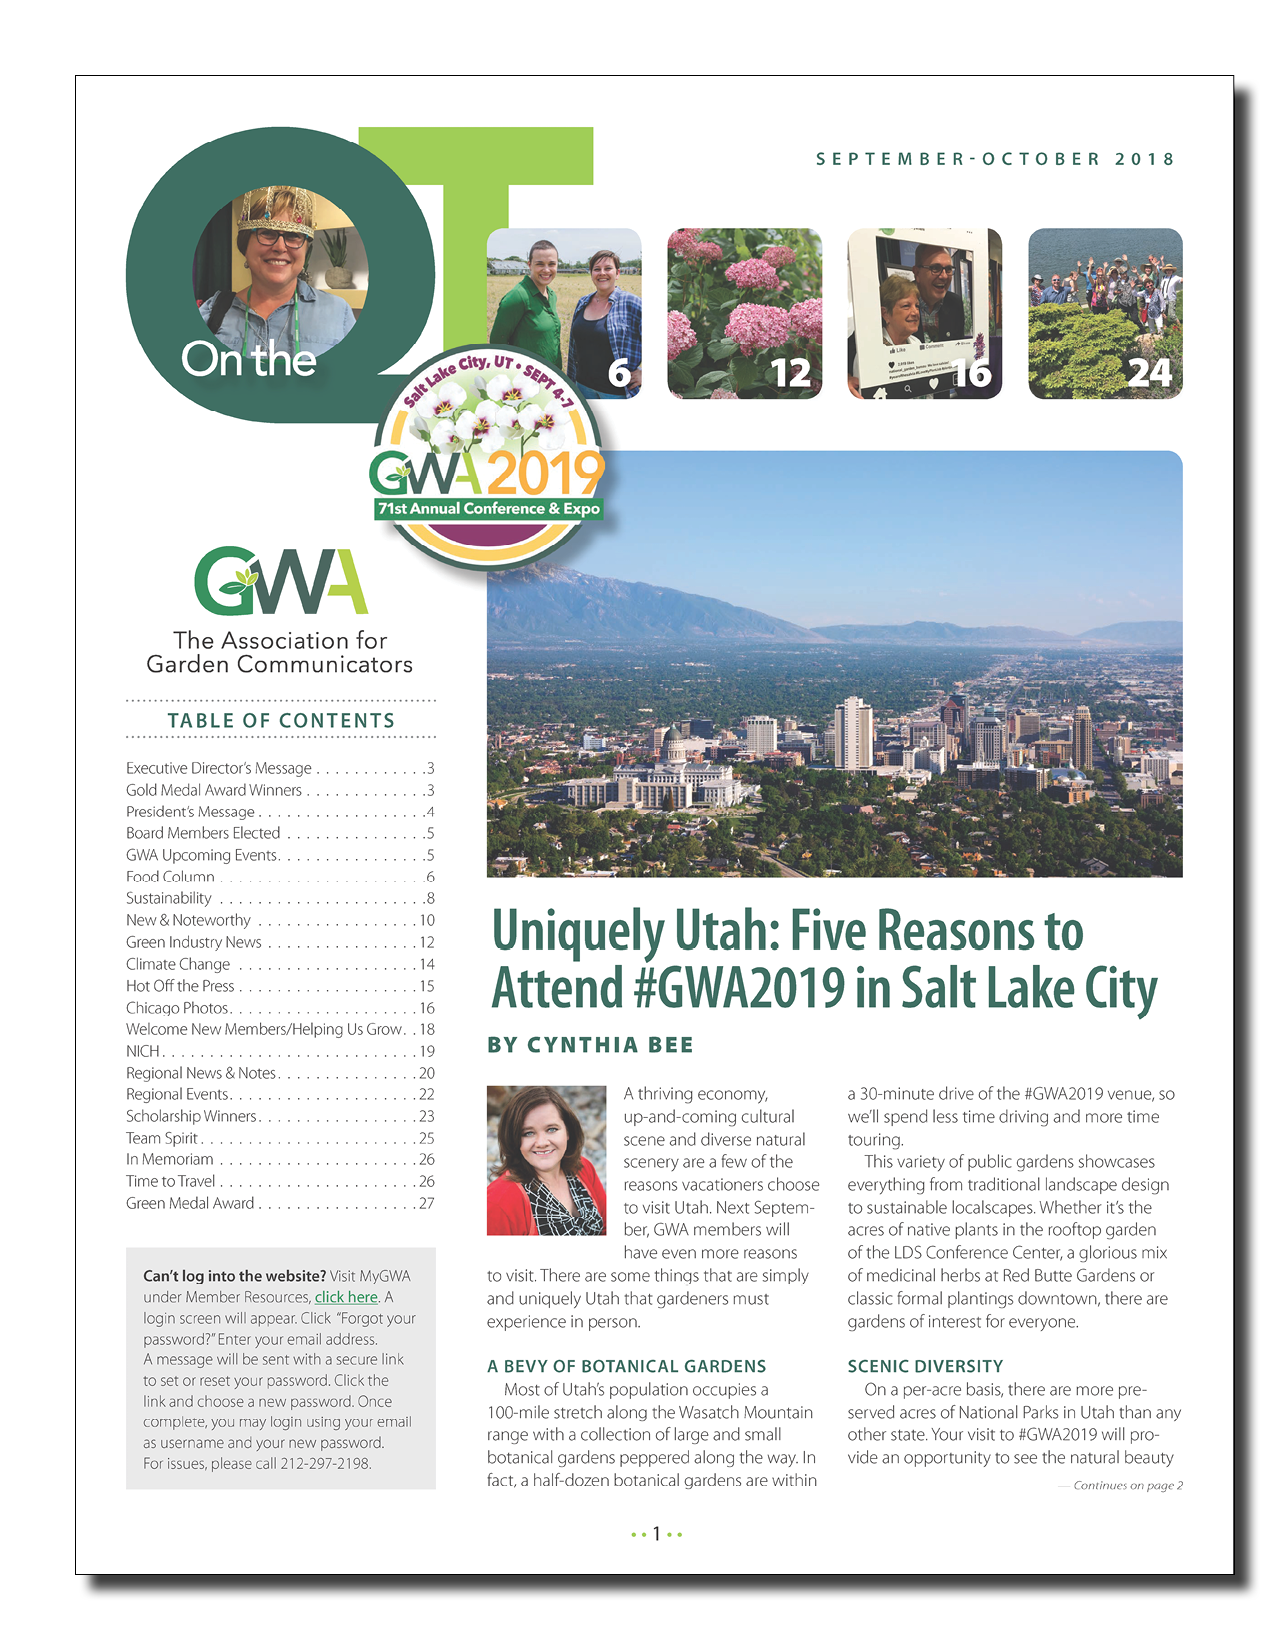 GWA_s_On_the_QT_September-October_2018_Issue_Cover.png